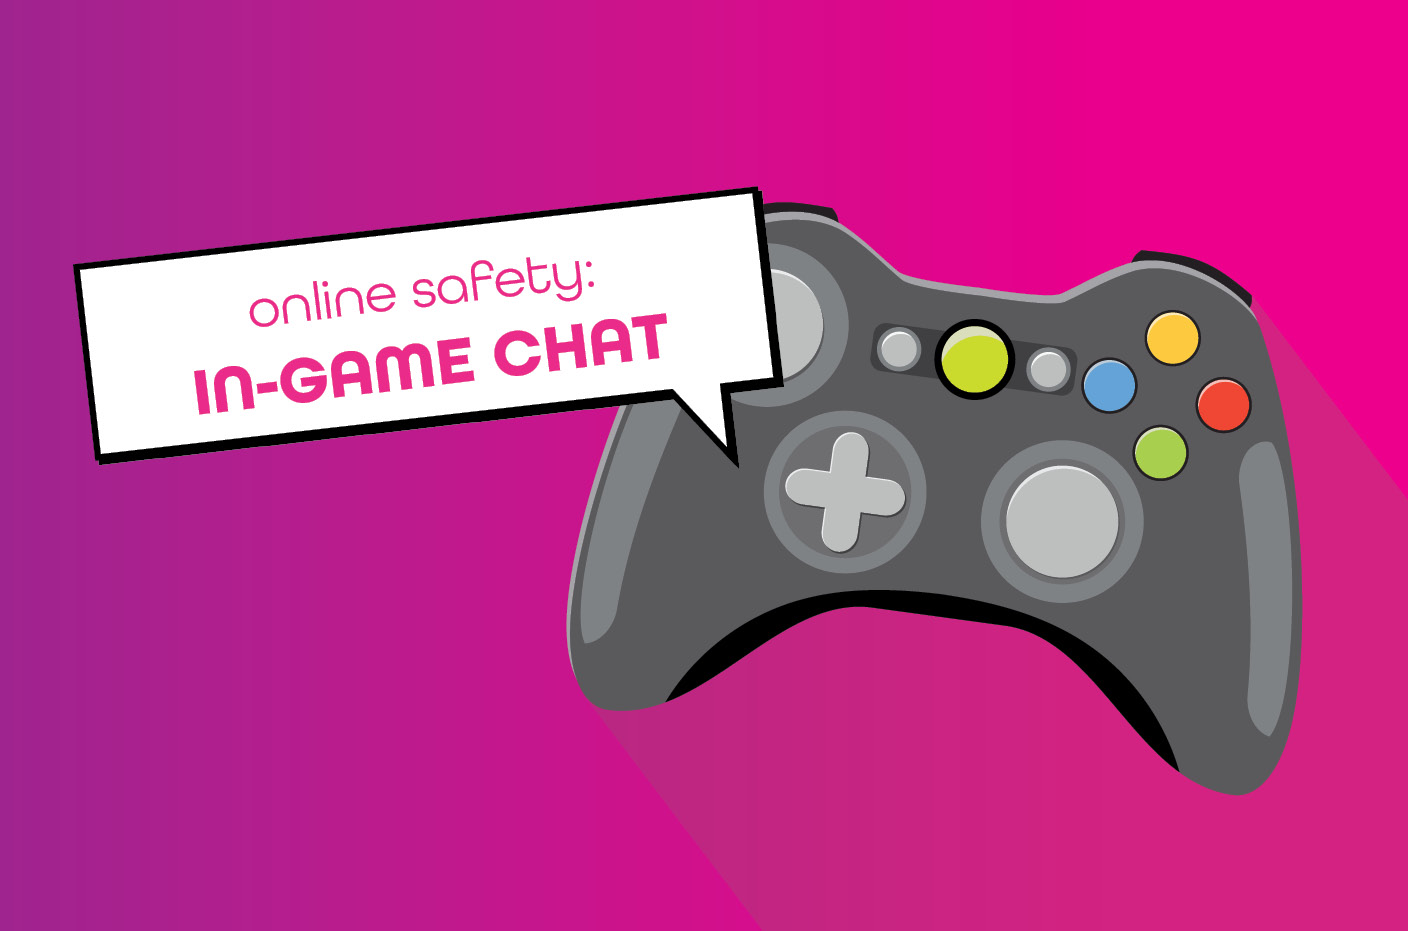 Online Safety: In-game Chat